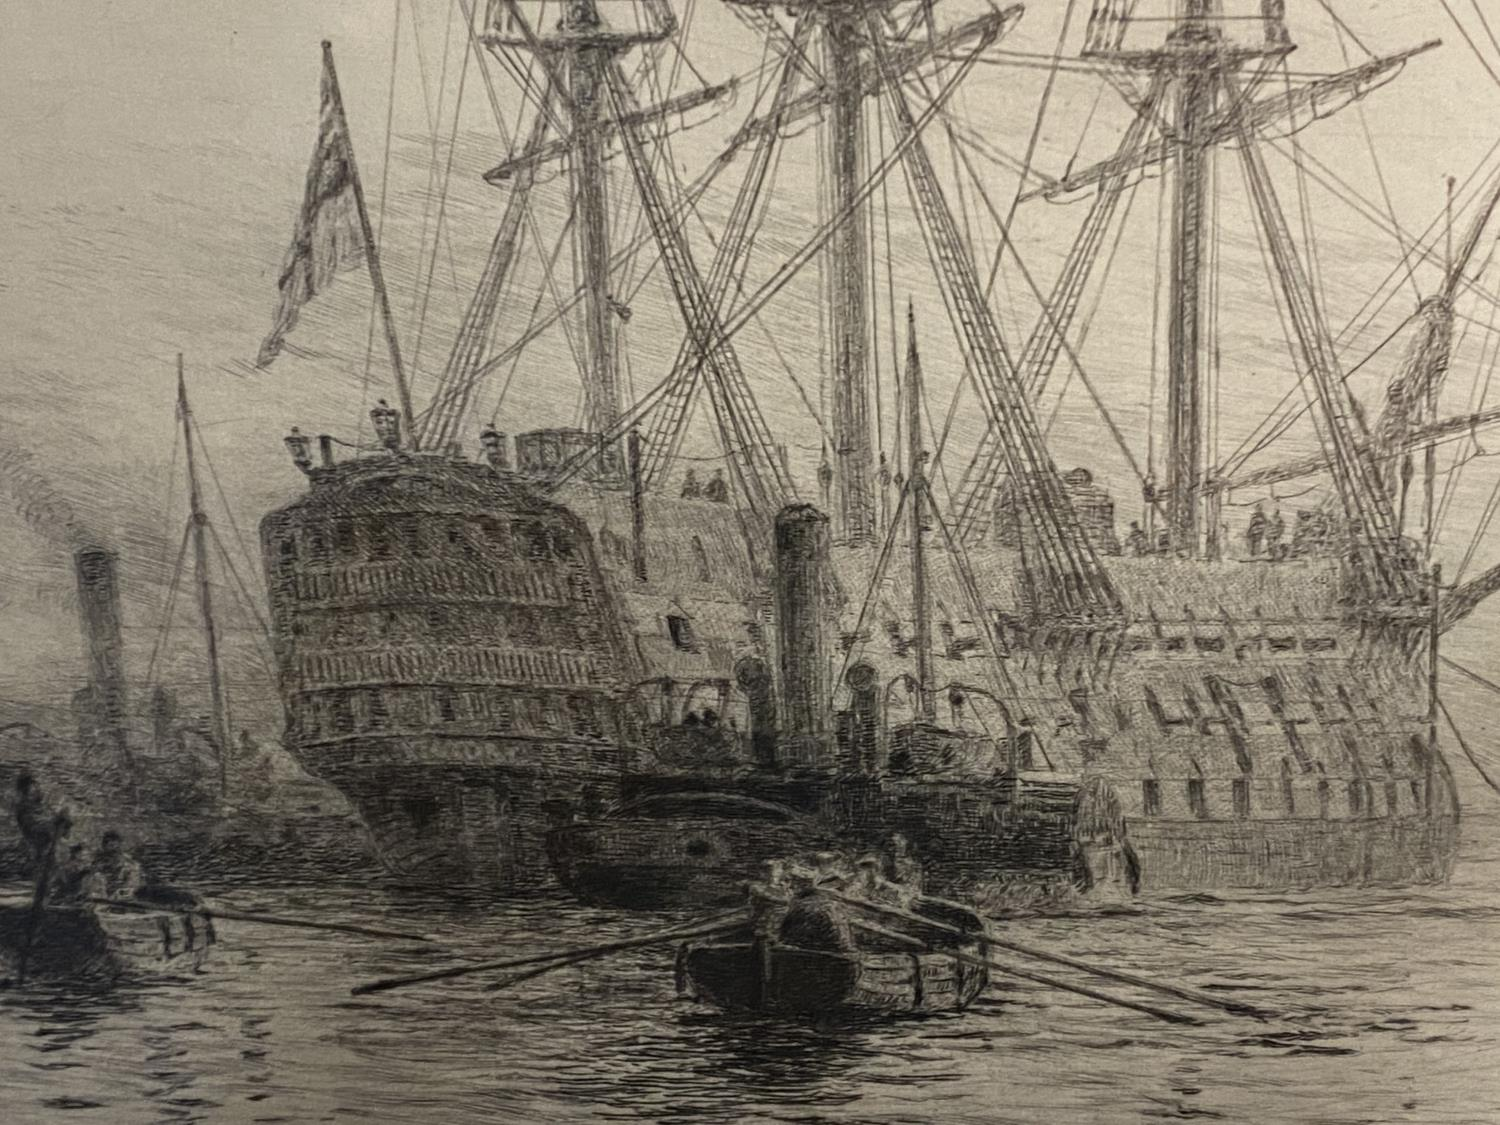 William Wylie, (1851-1931-), etching, Man of War with tugs in harbour, signed in pencil lower left - Image 11 of 12